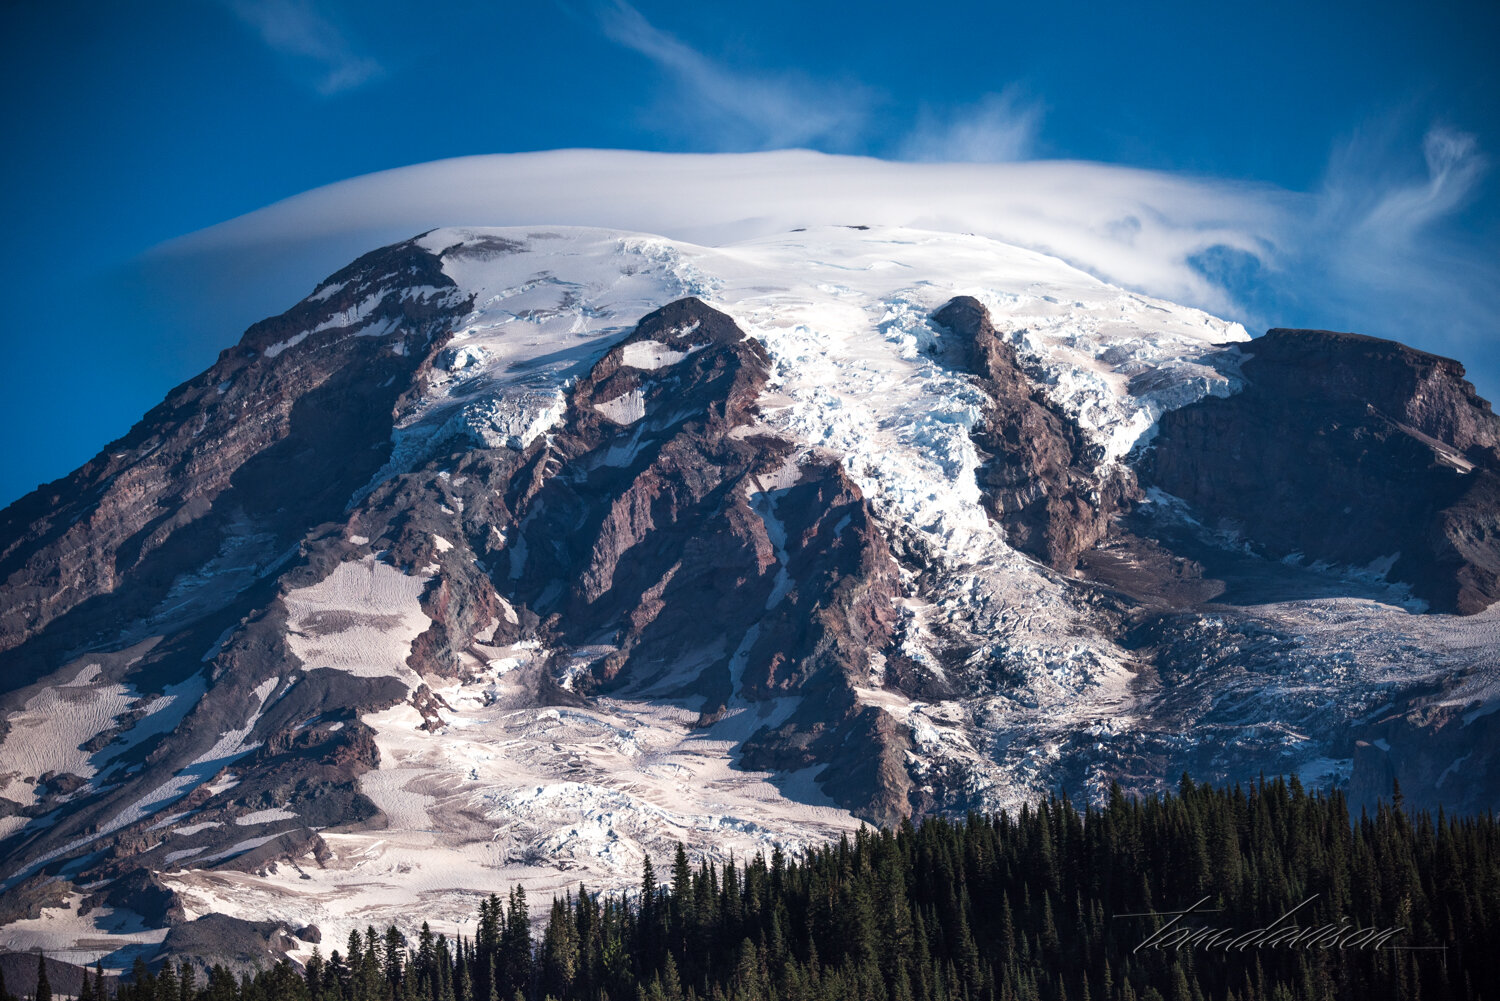 Mountains as large as Mt. Rainier can produce their own weather systems. Seeing a cap on Mt. Rainier was not unusual.